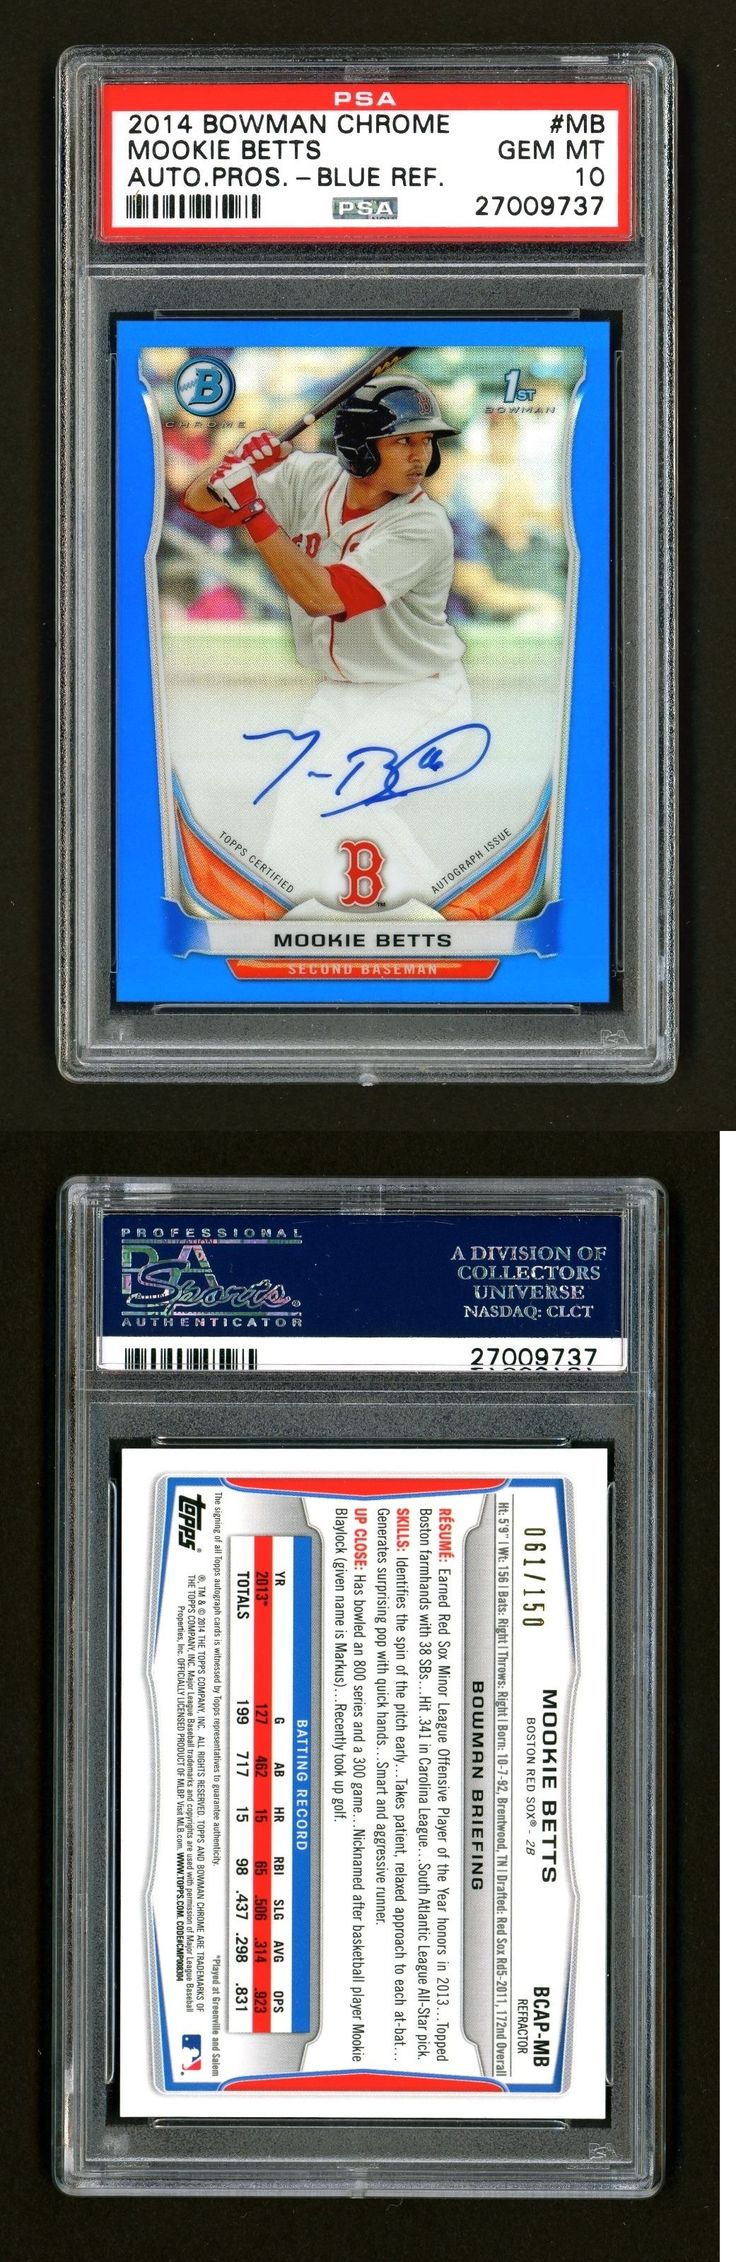 Sports Memorabilia: 2014 Bowman Chrome Mookie Betts Blue Refractor Rookie Rc Auto 61 150 Psa 10 -> BUY IT NOW ONLY: $1750 on eBay!